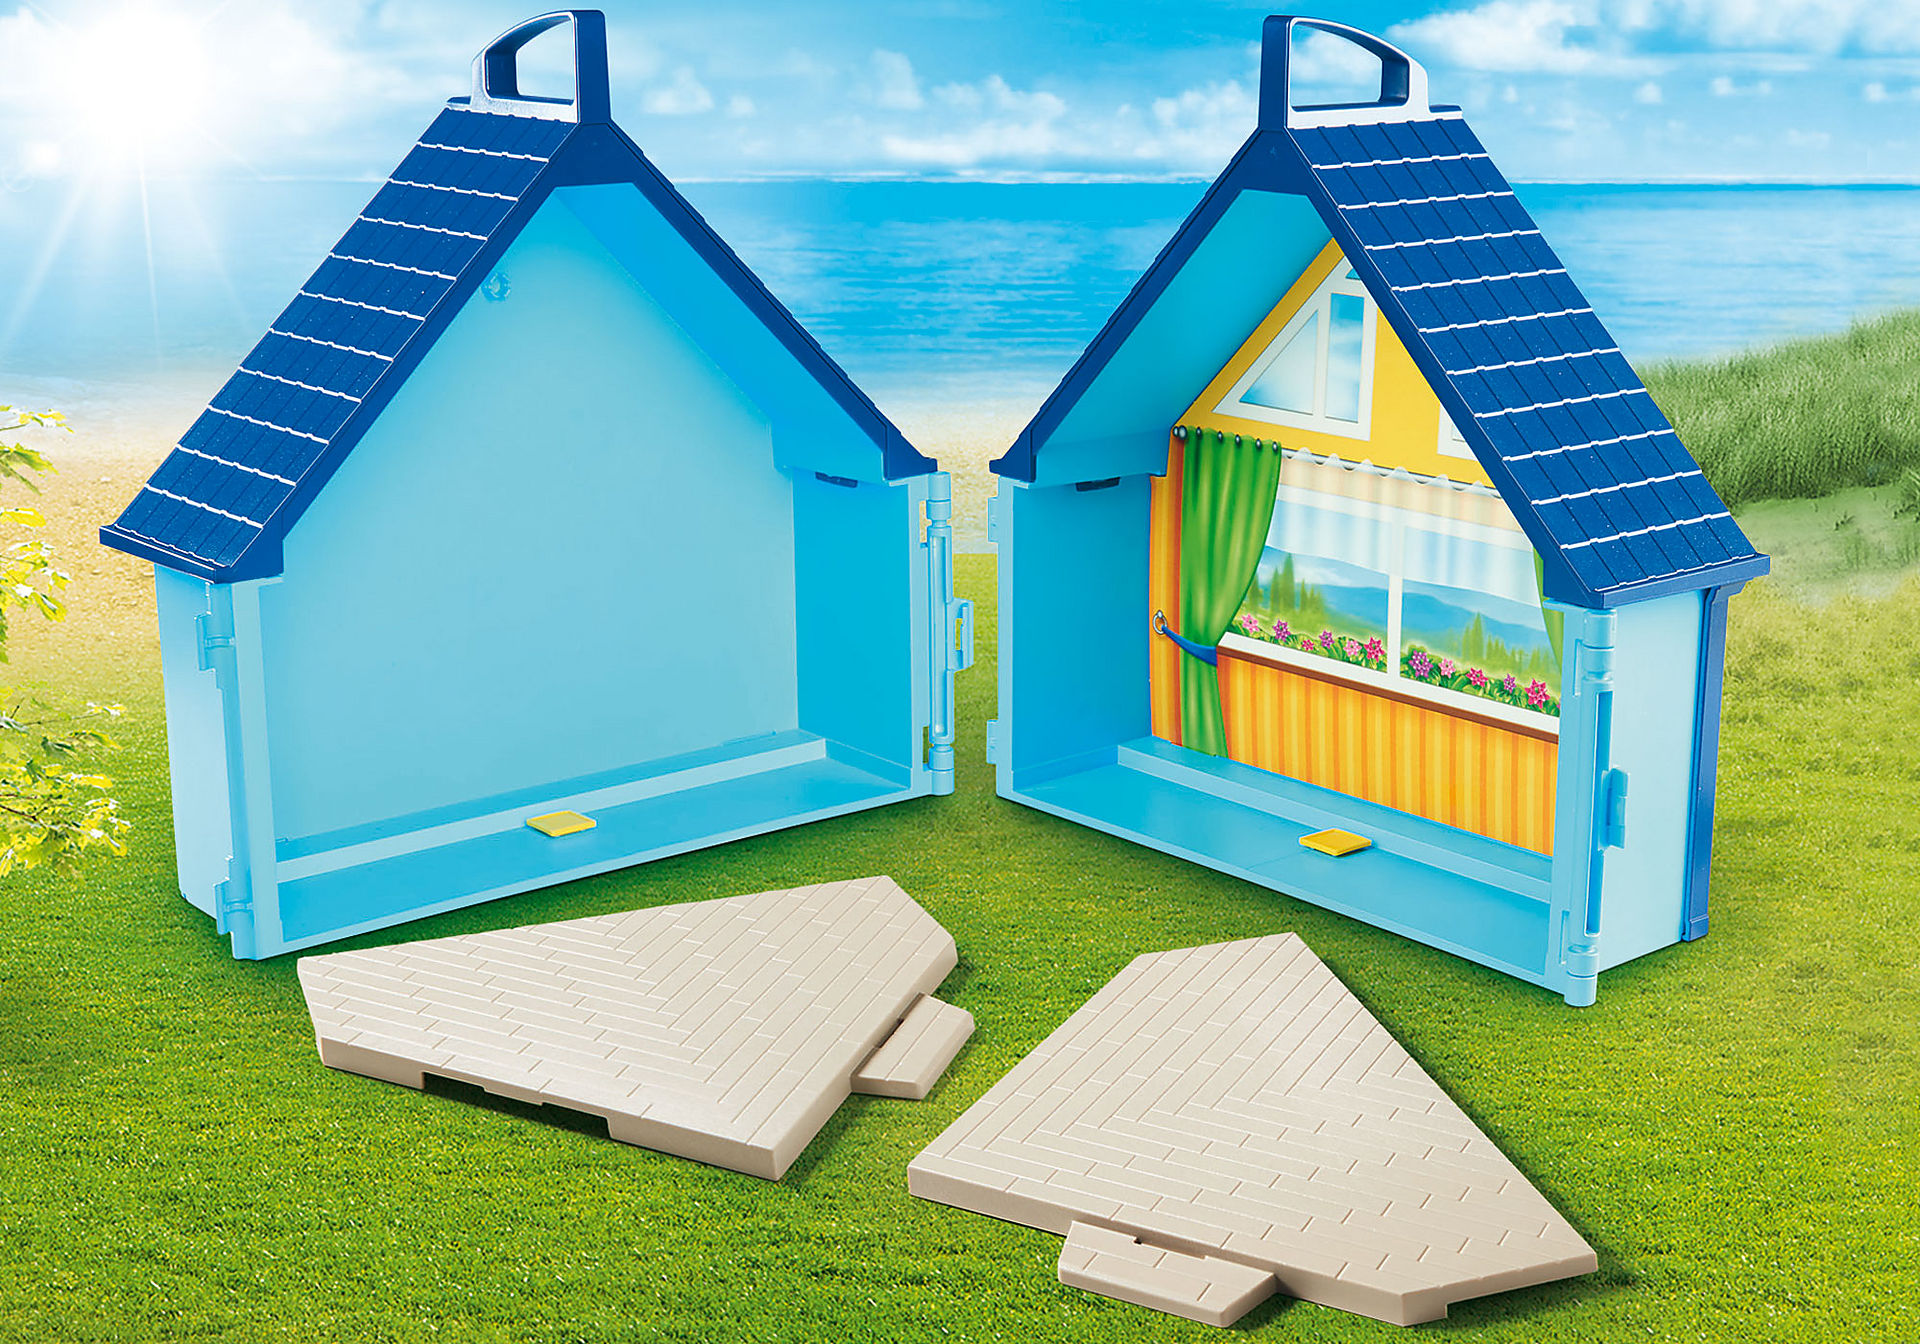 http://media.playmobil.com/i/playmobil/70219_product_extra3/PLAYMOBIL-FunPark Summerhouse Playbox